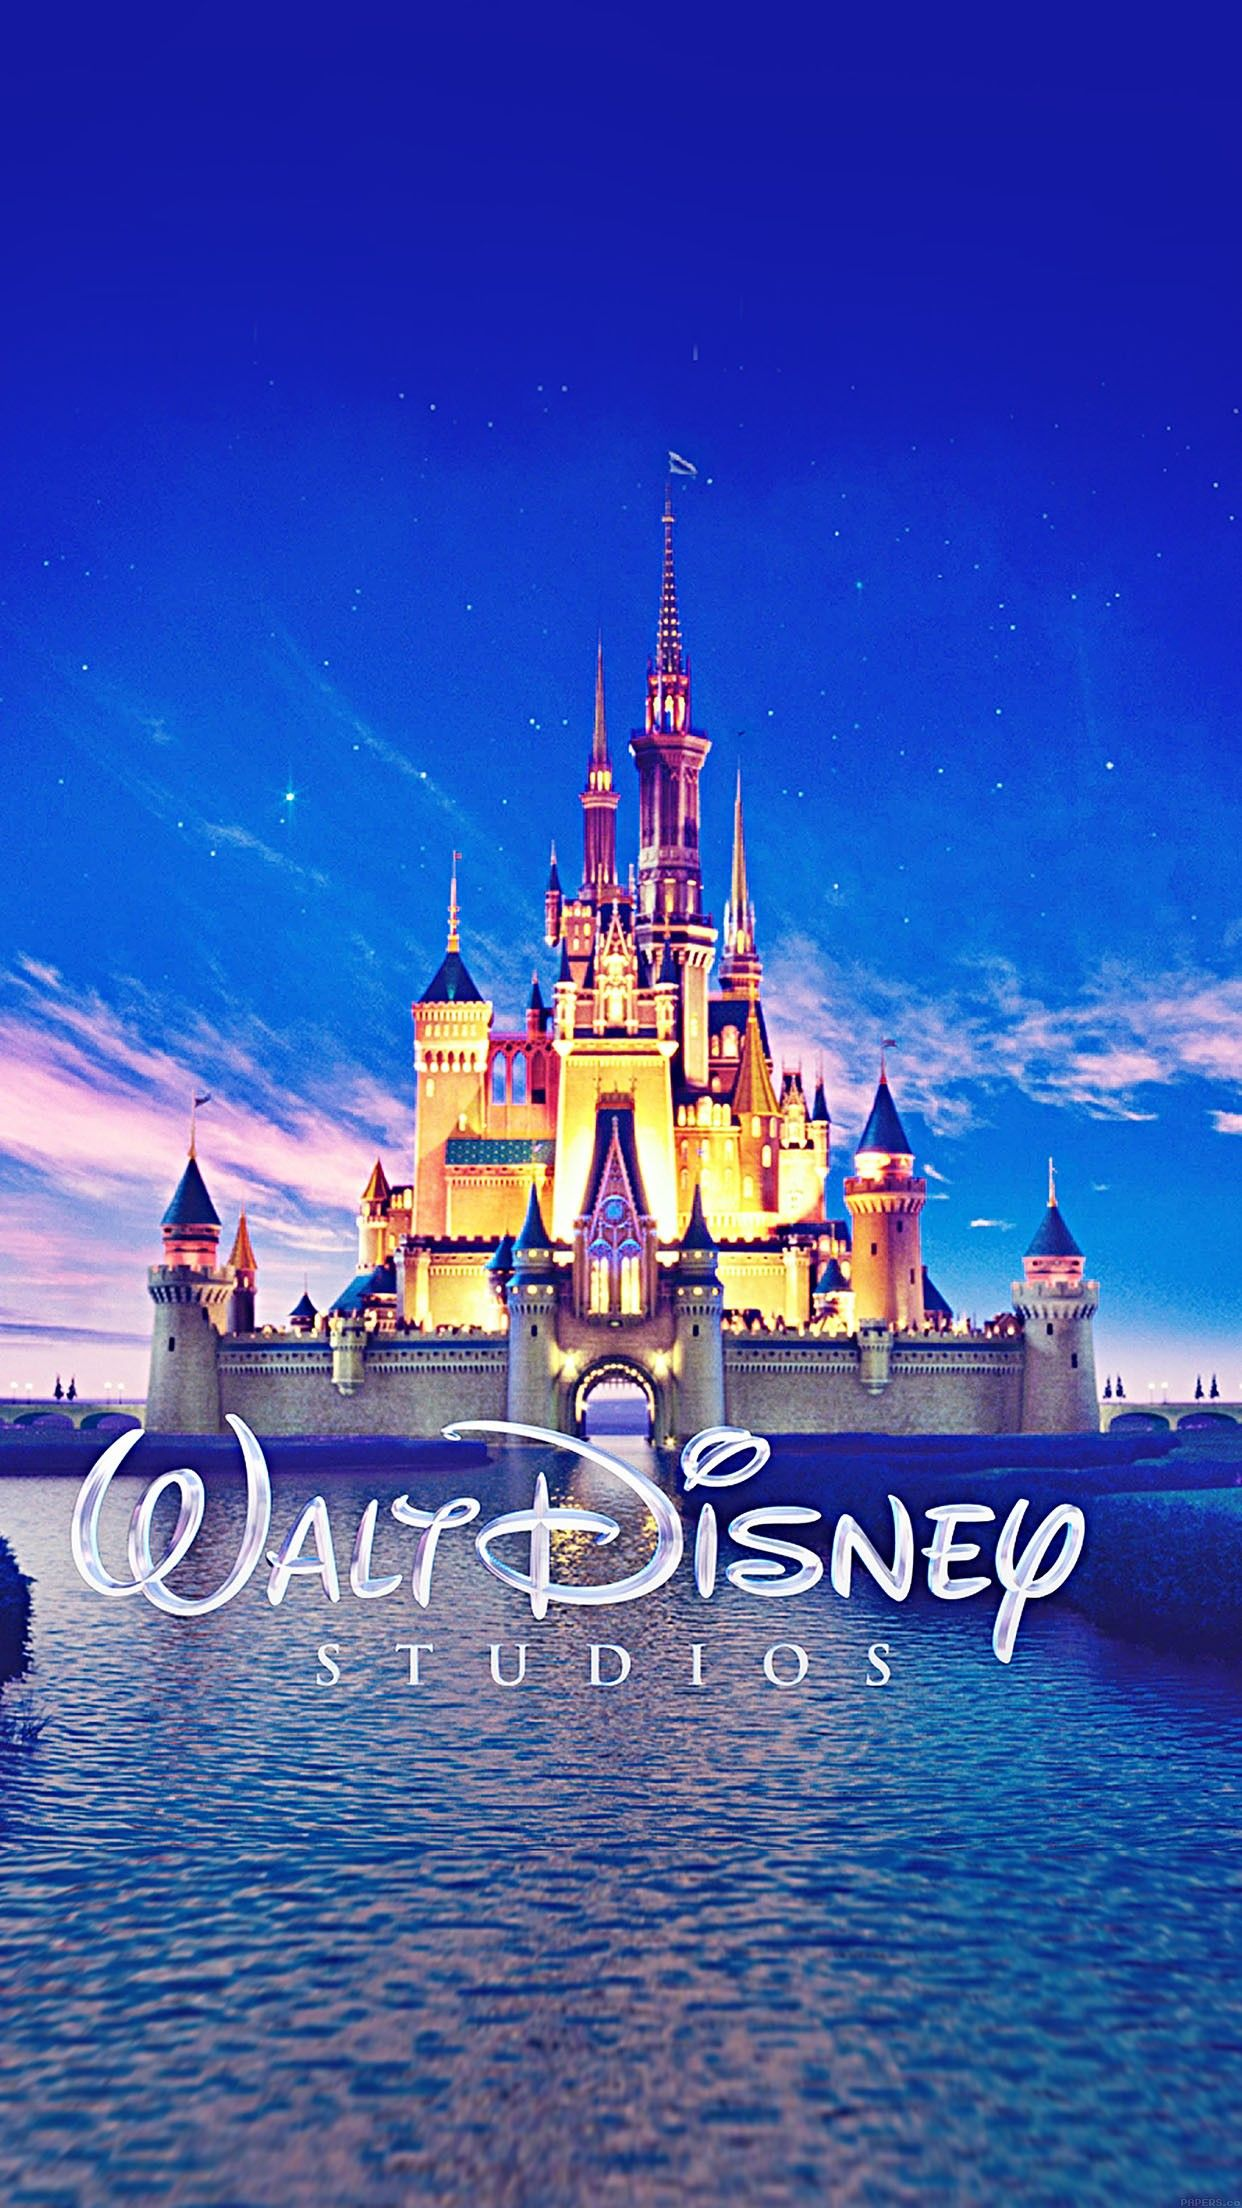 Best Wallpapers For All Iphone Retina Disney Castle Wallpaper Iphone Disney Disney Wallpaper Walt Disney Castle